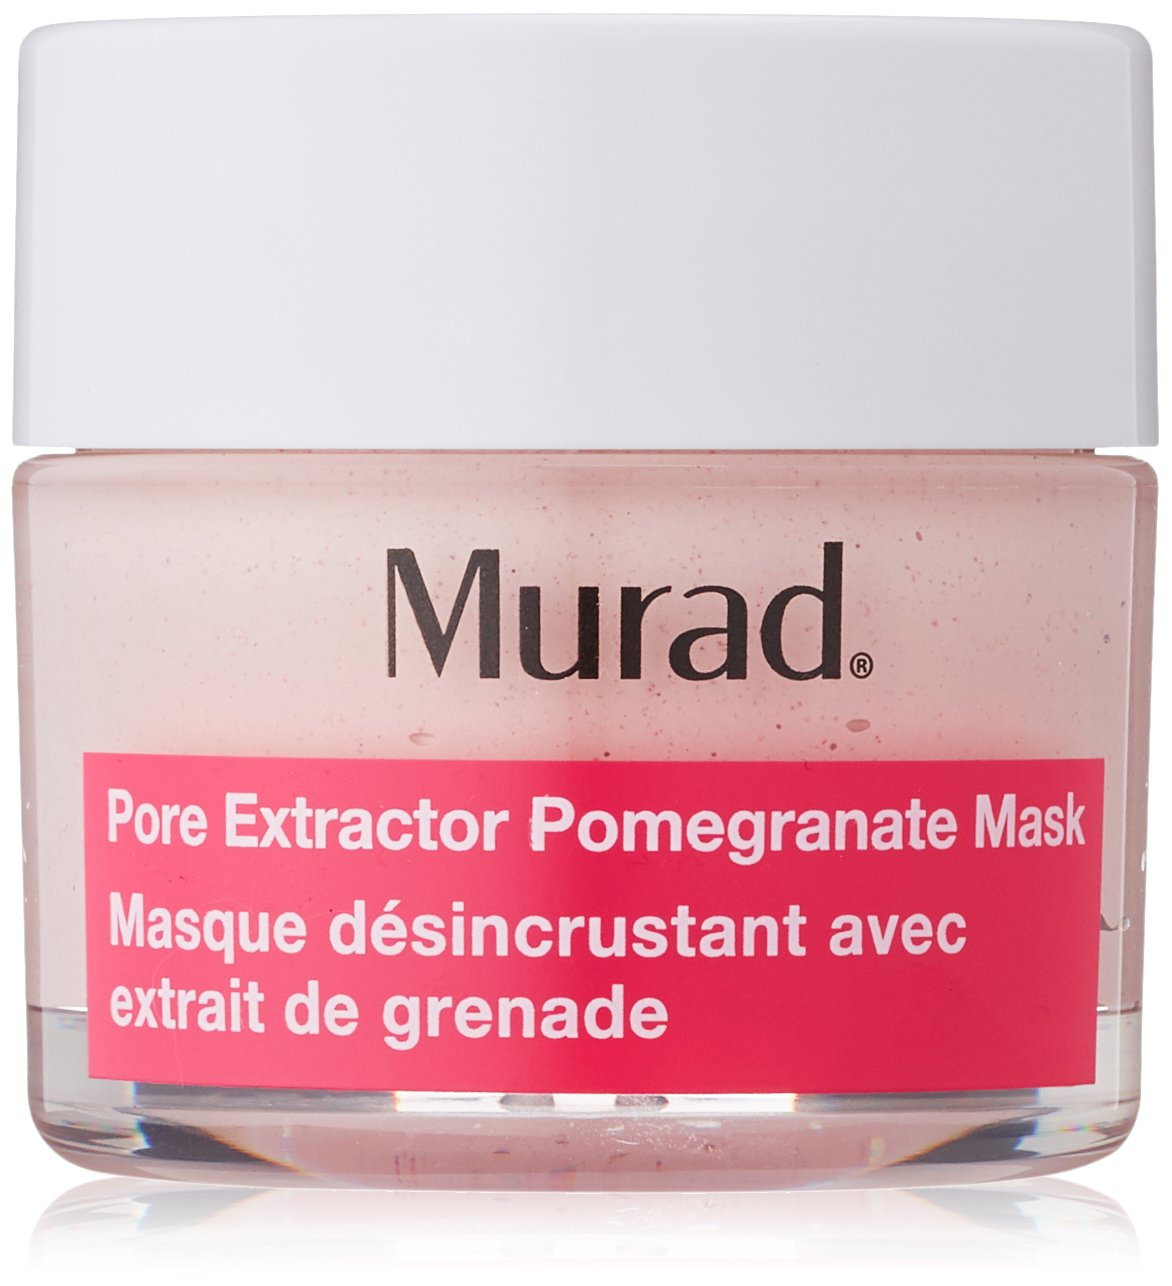 Murad Pore Extractor Pomegranate Mask 80830